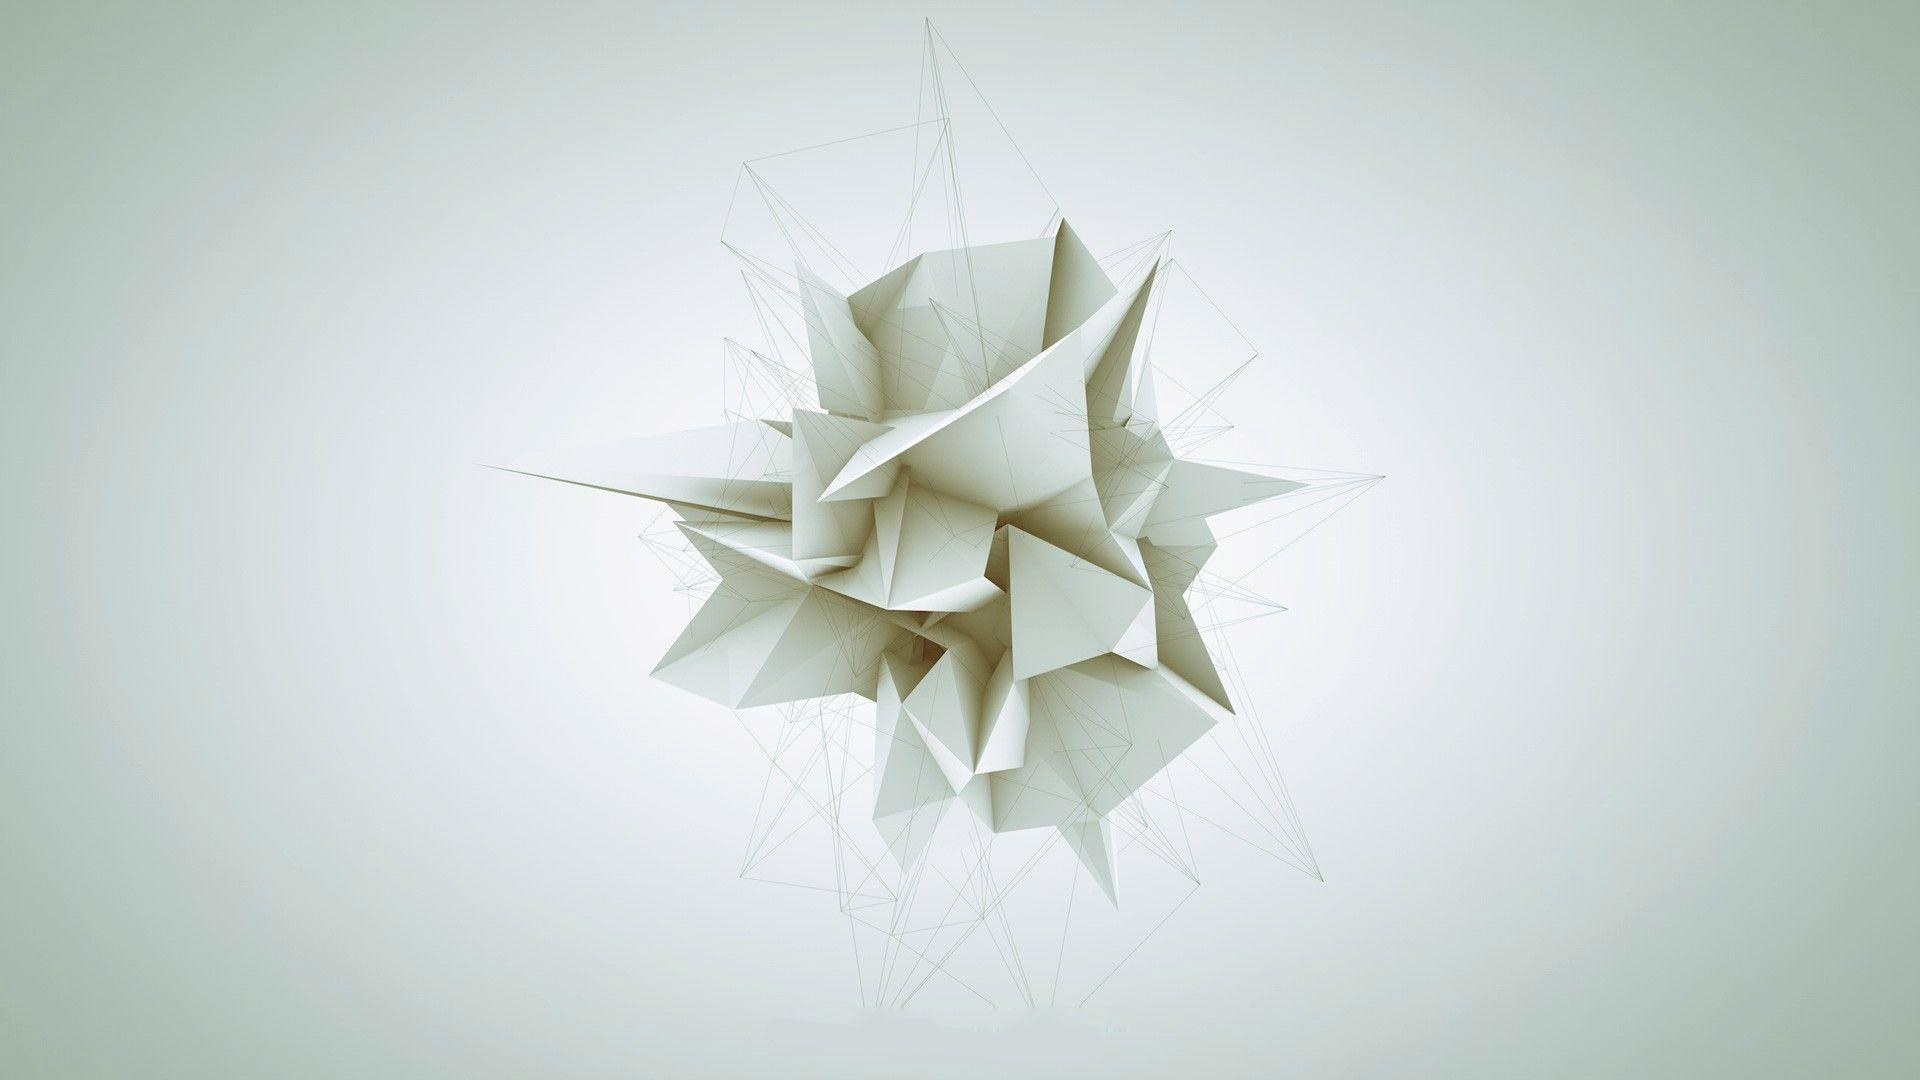 1000+ images about Abstract Geometry on Pinterest | Wallpapers ...